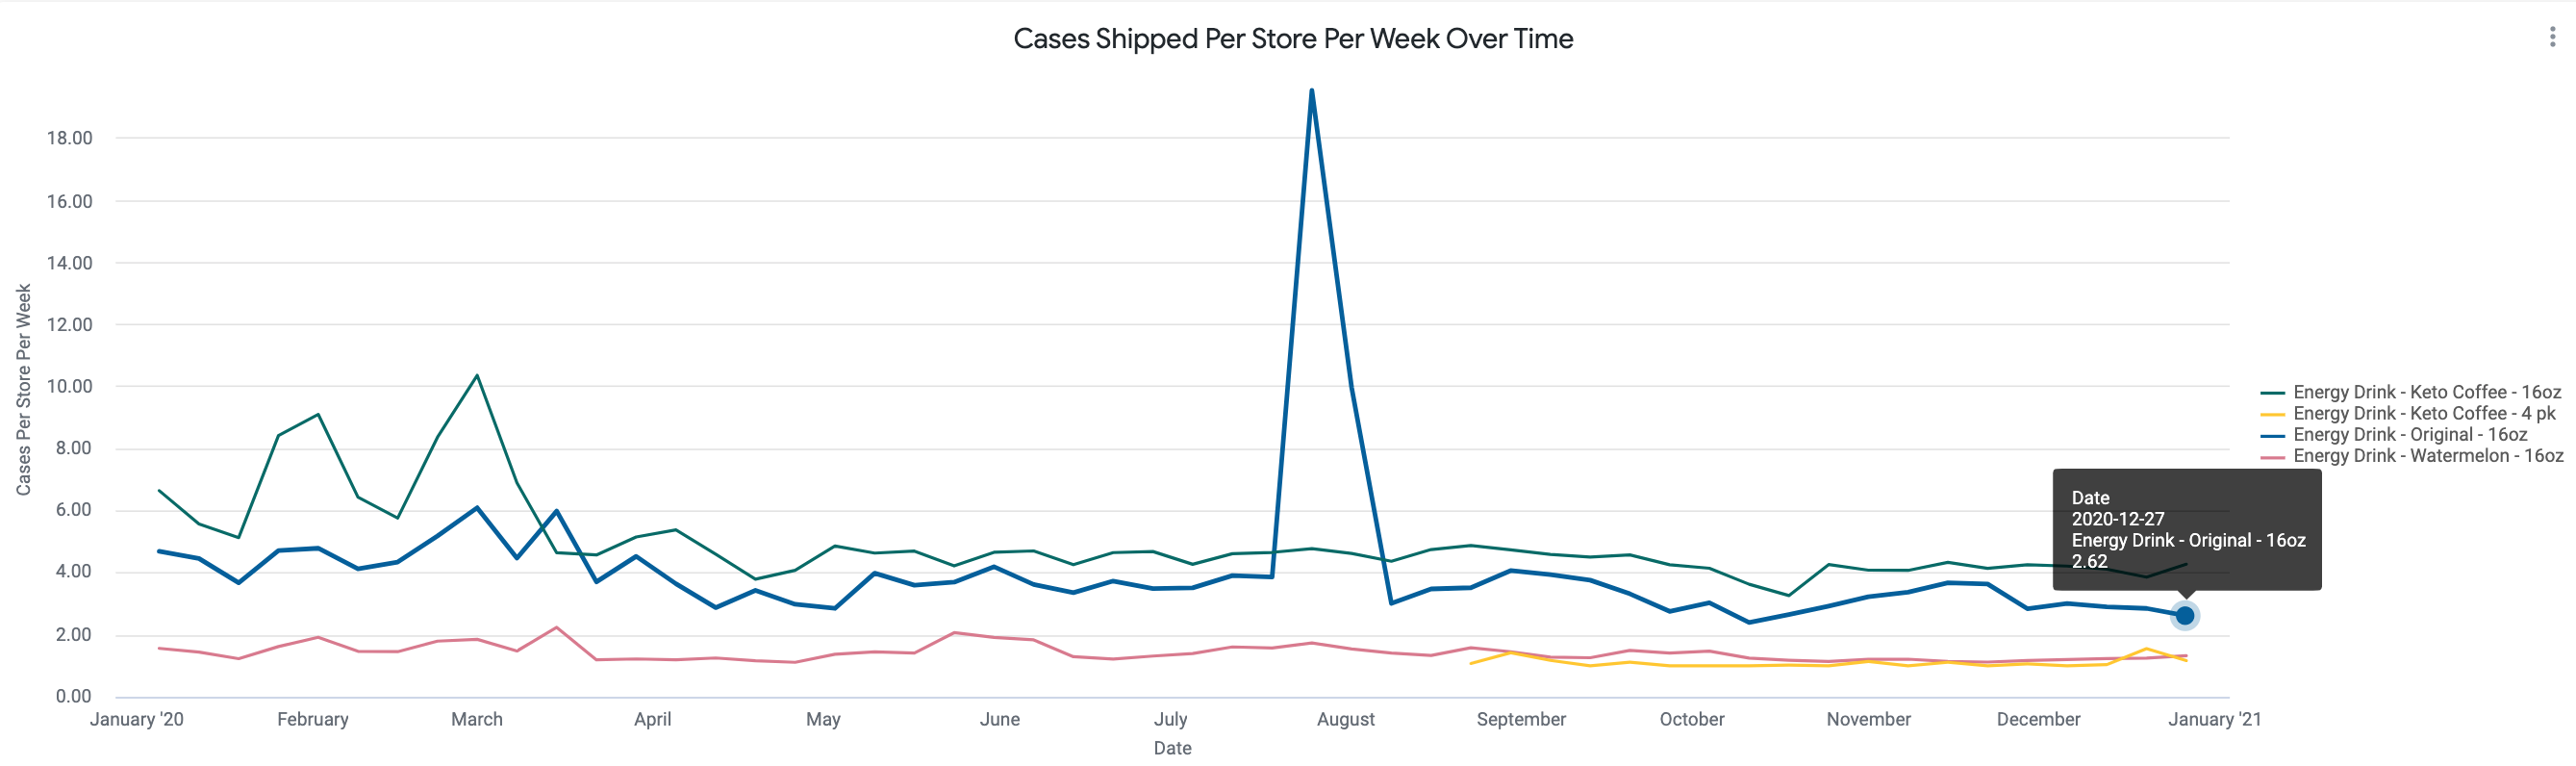 Cases_Shipped_Per_Store_Per_Week_Over_Time.png